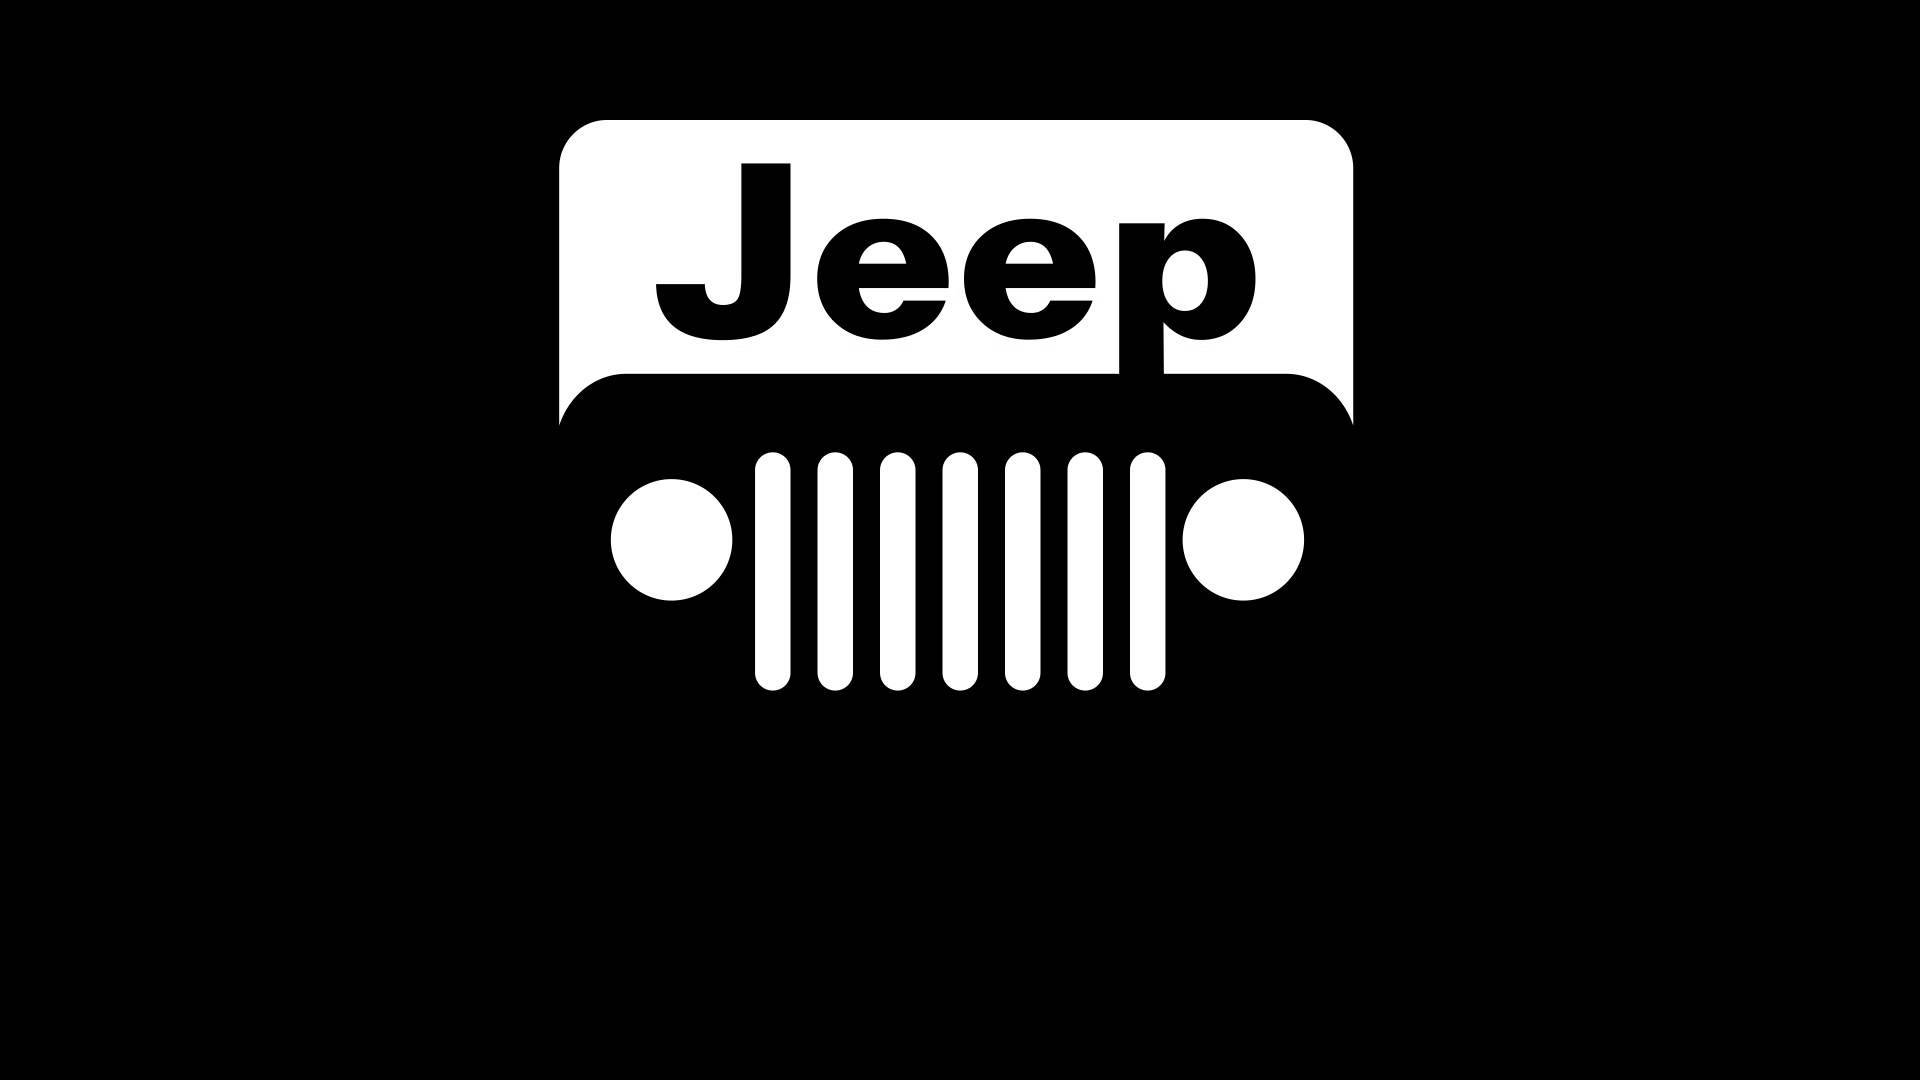 jeep logo wallpapers - wallpaper.wiki